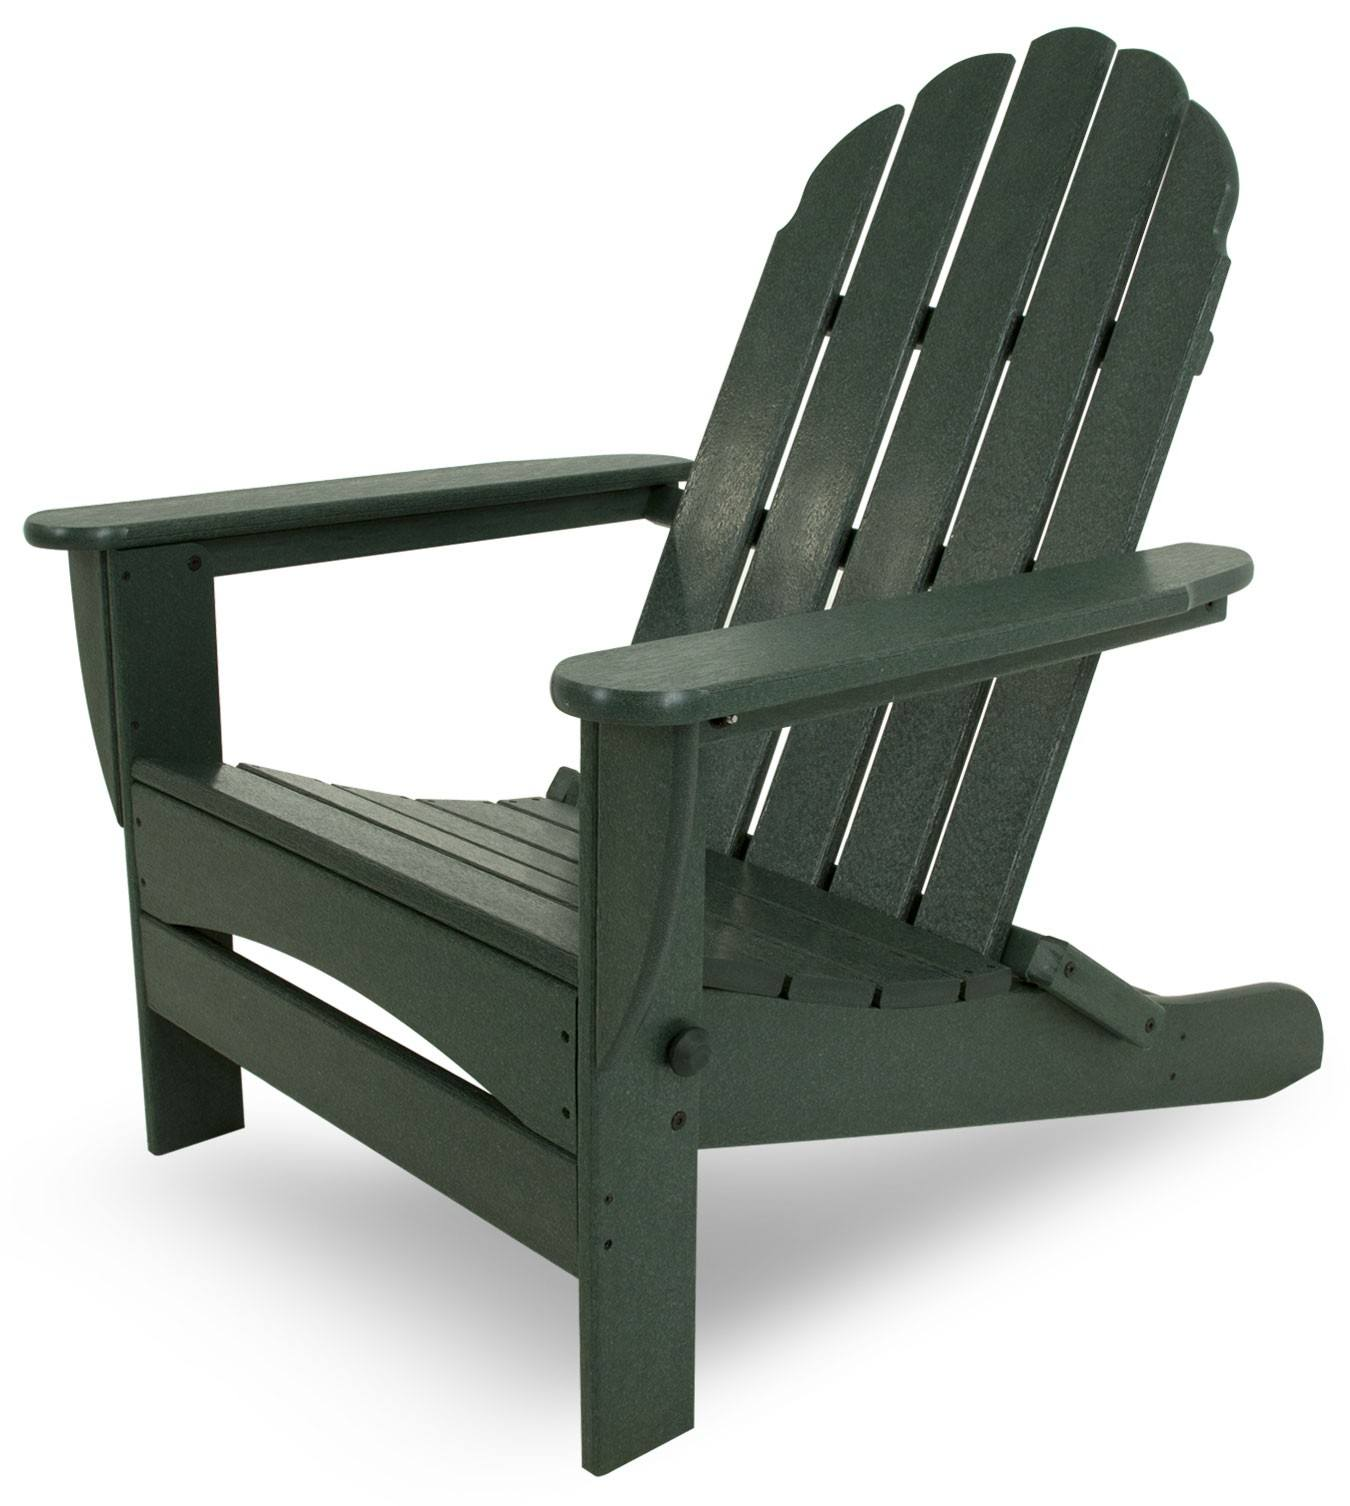 Oversized Patio Chairs Polywood Classic Oversized Curveback Folding Adirondack